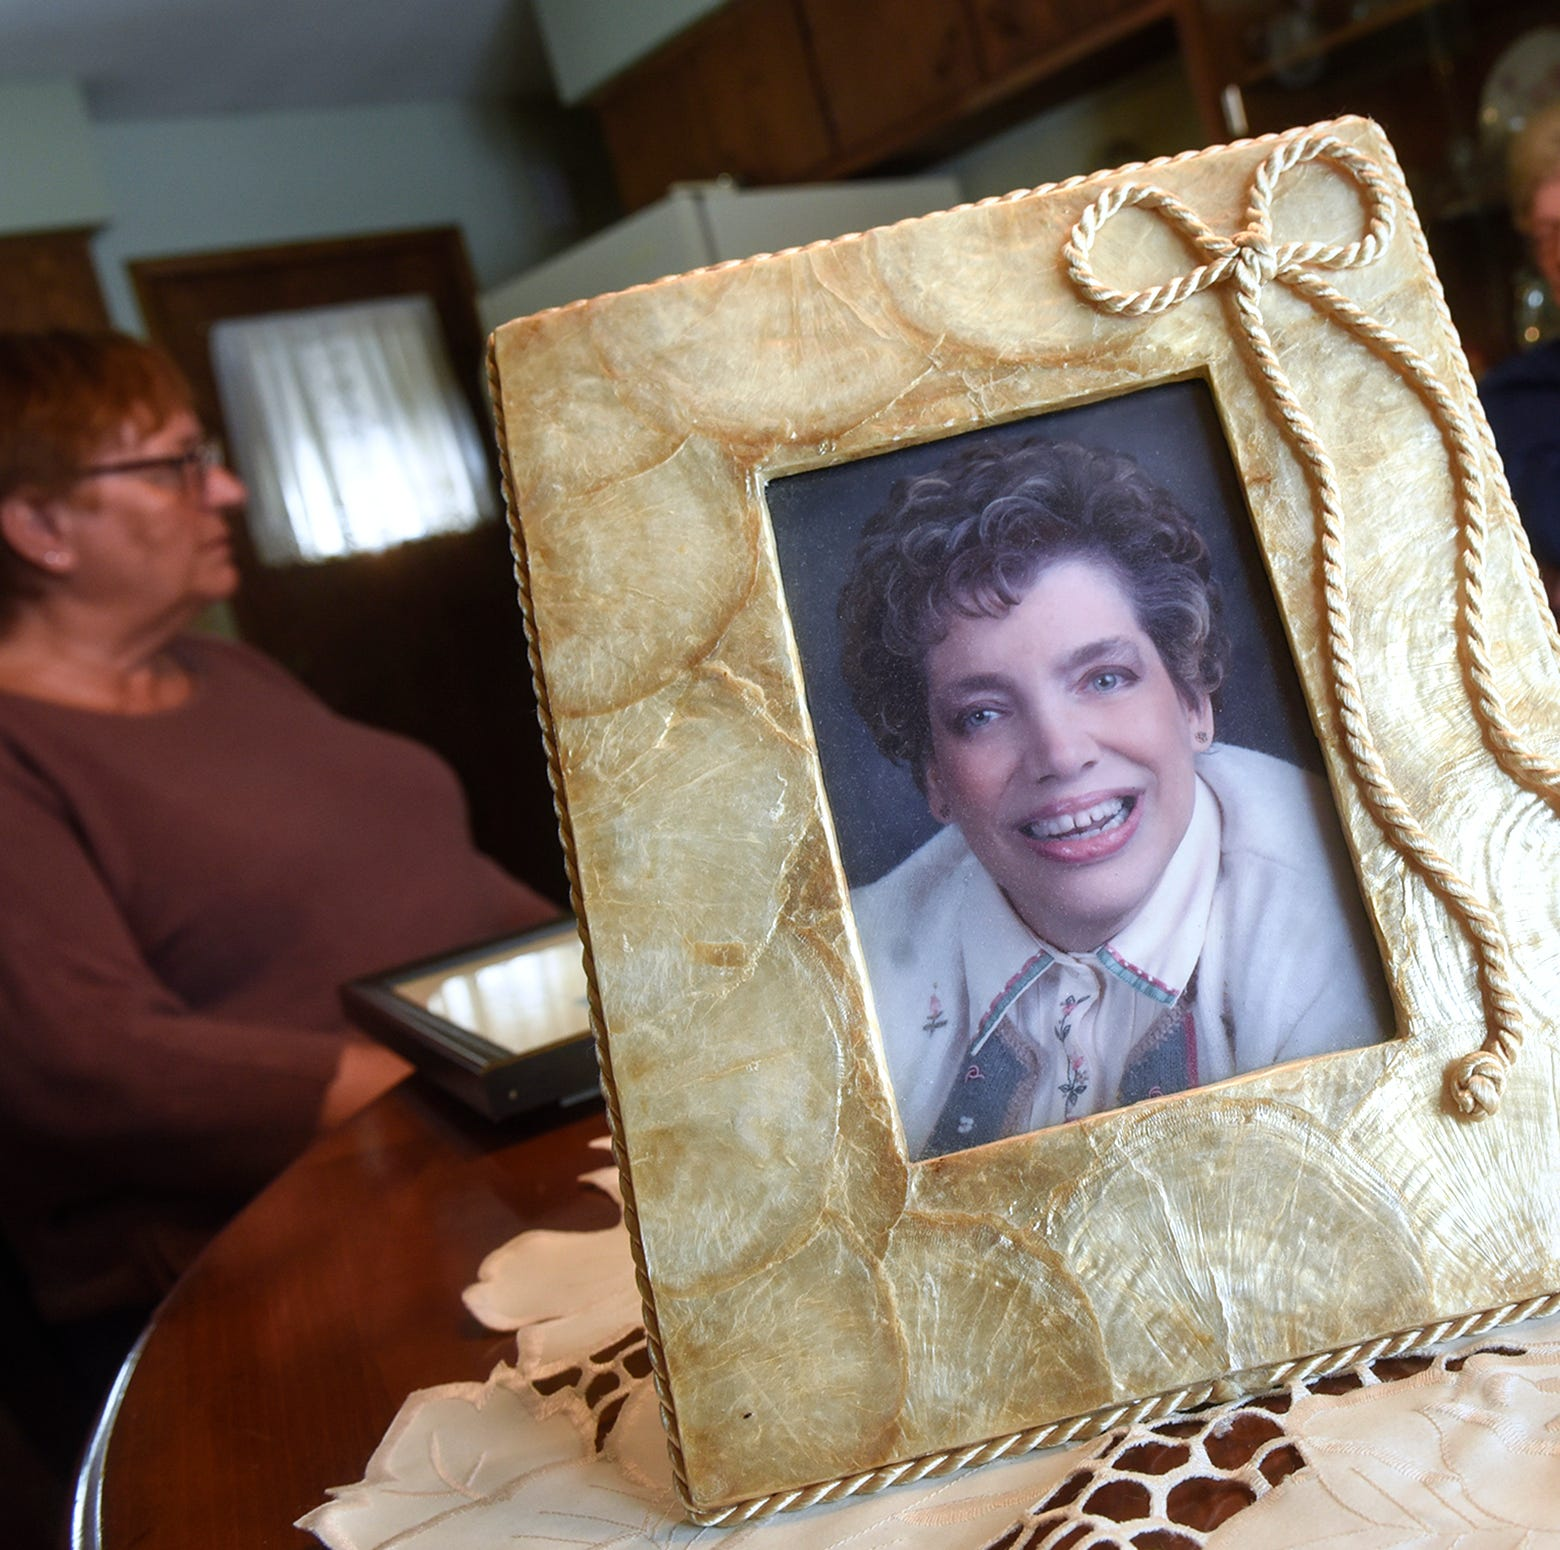 'A pioneer' has died: Remembering Kathy Wingen who championed accessibility in St. Cloud